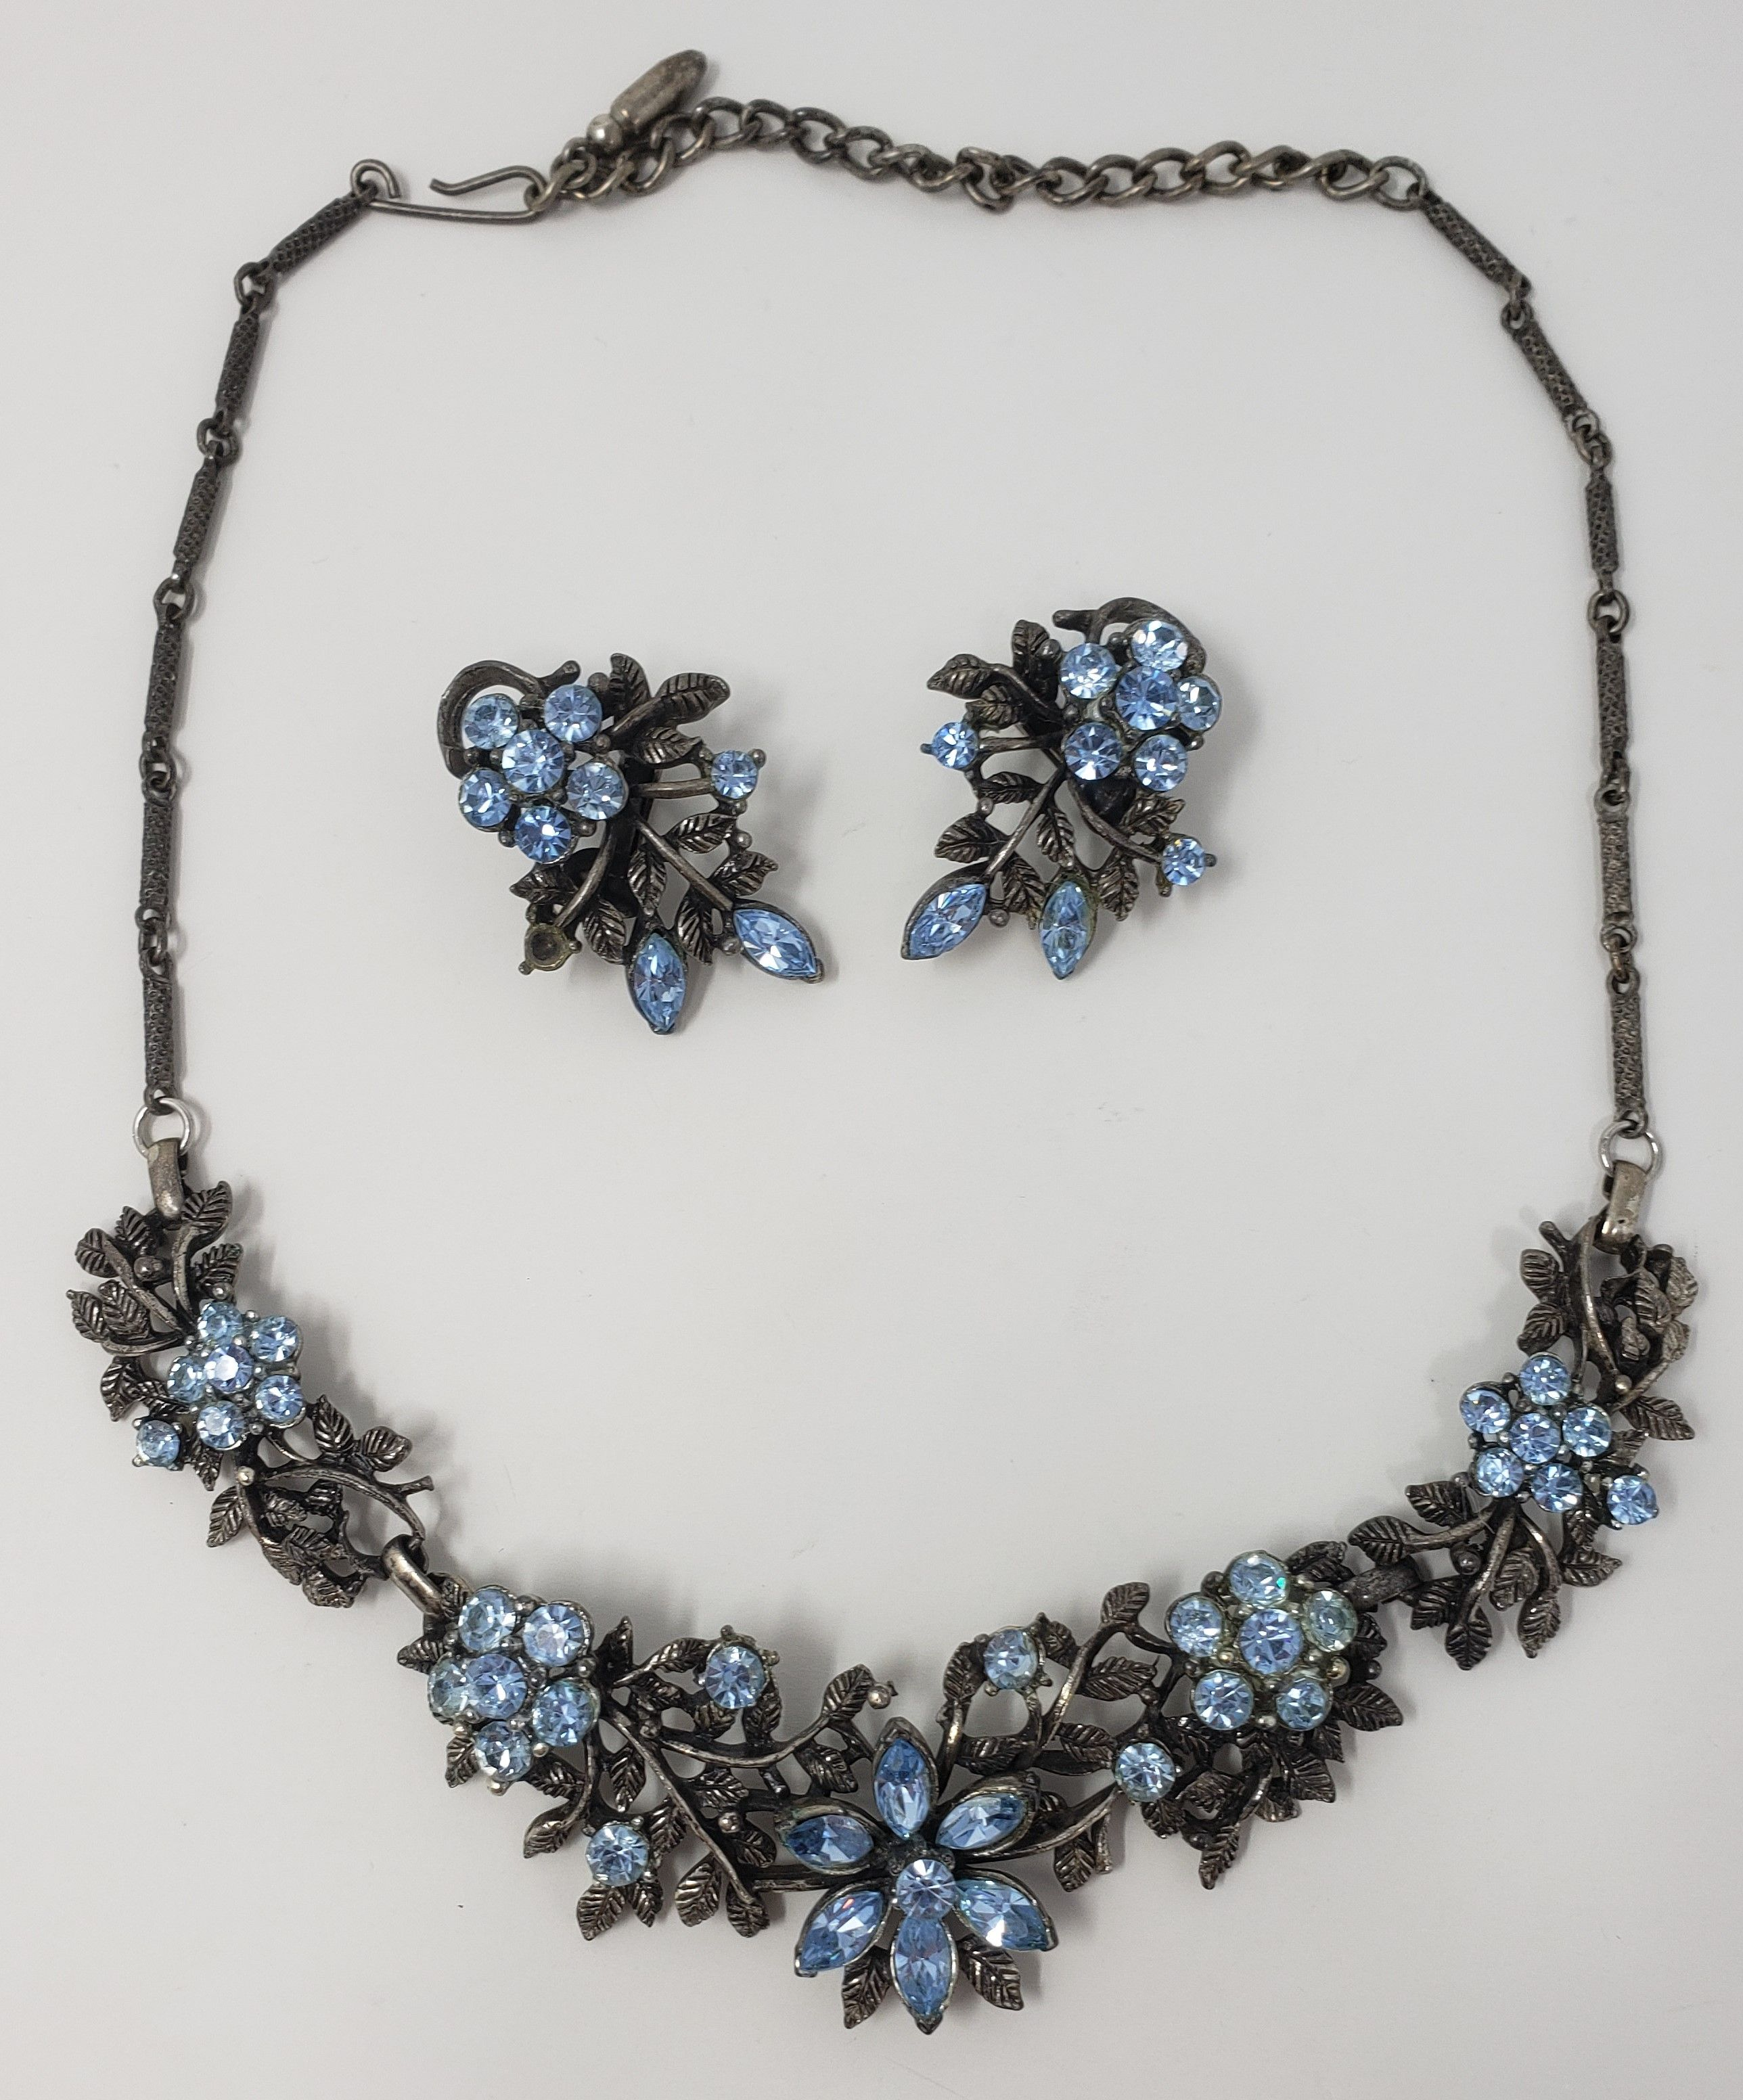 Vintage Aquaremarin necklace and earring set